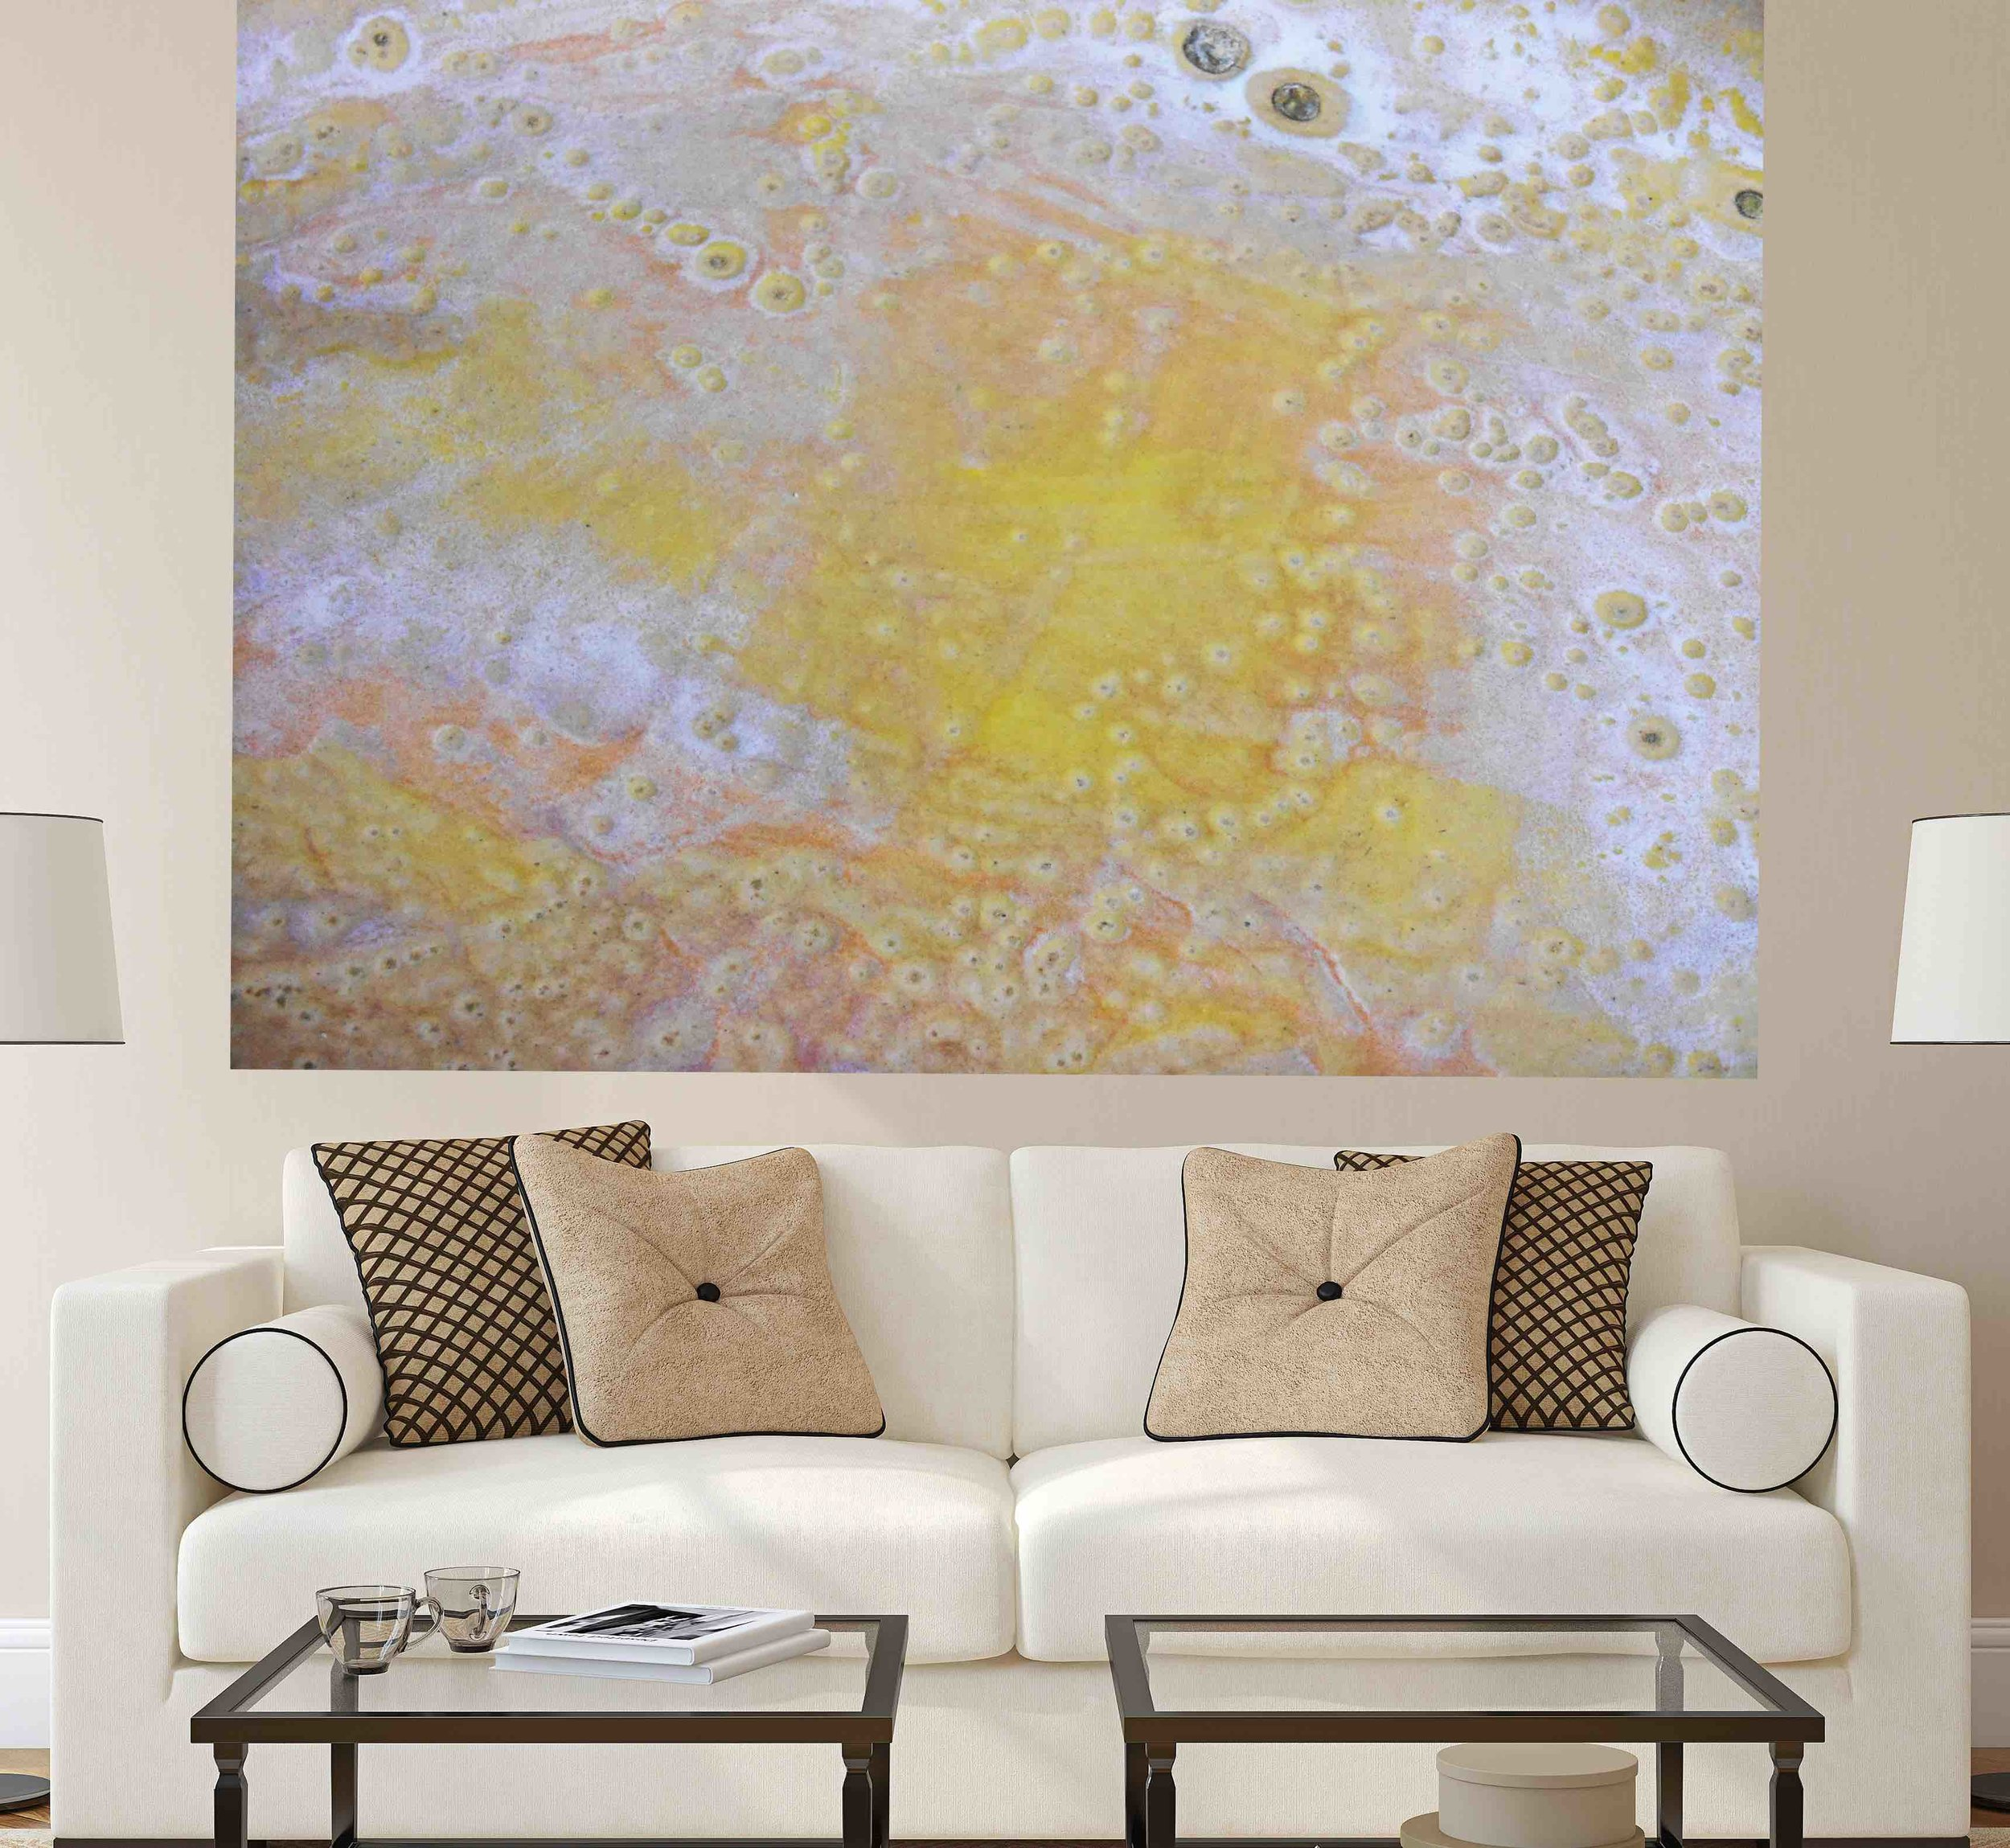 large contemporary painting on behind a sofa